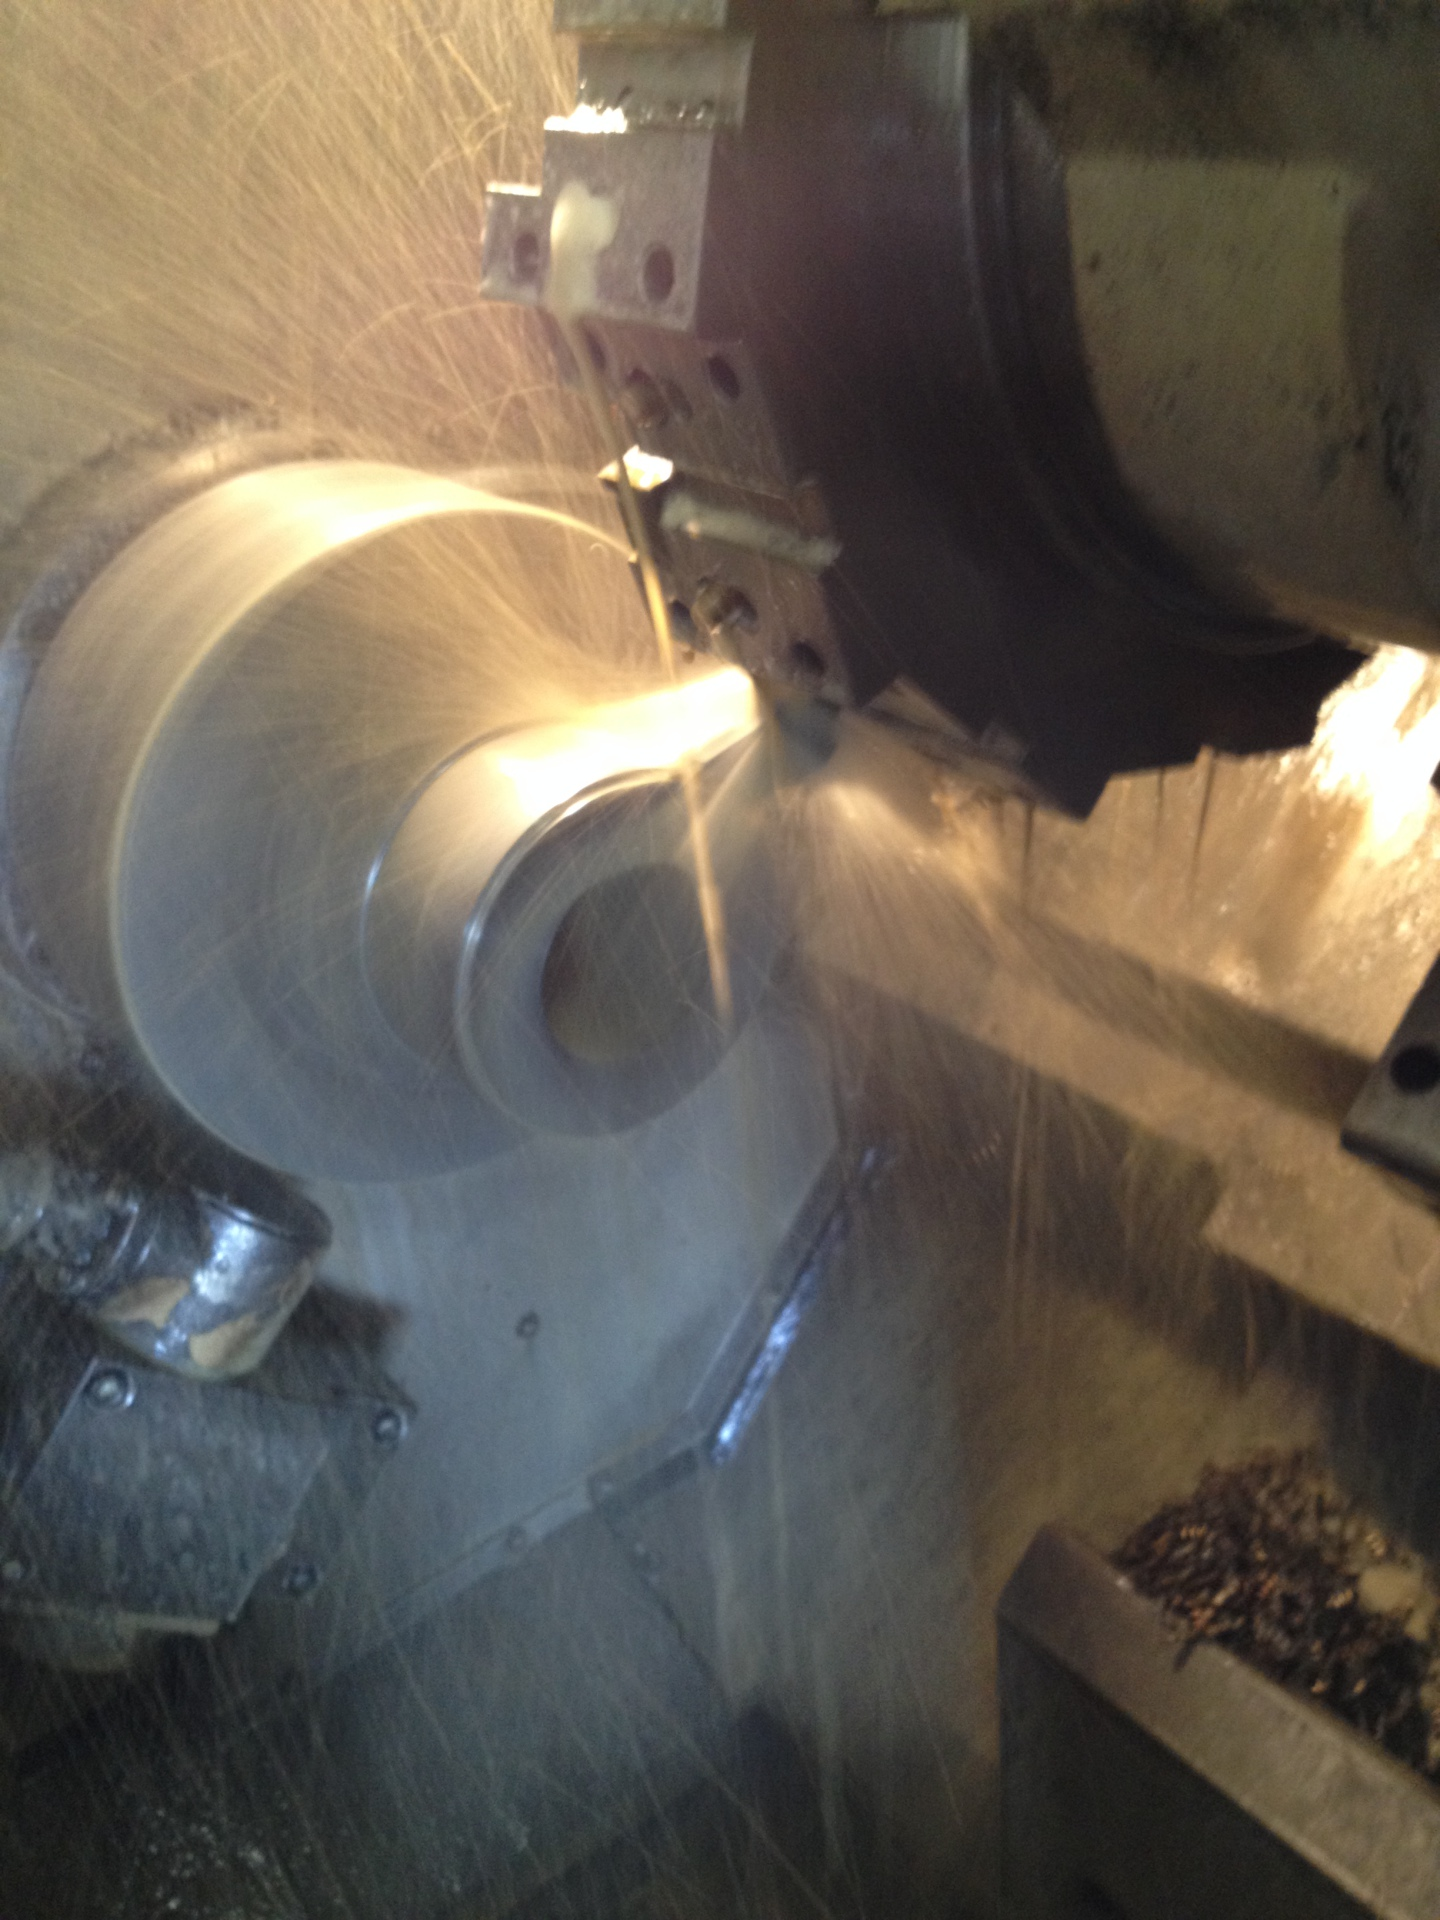 Stine Gear uses many types of machines to cut gears of all types